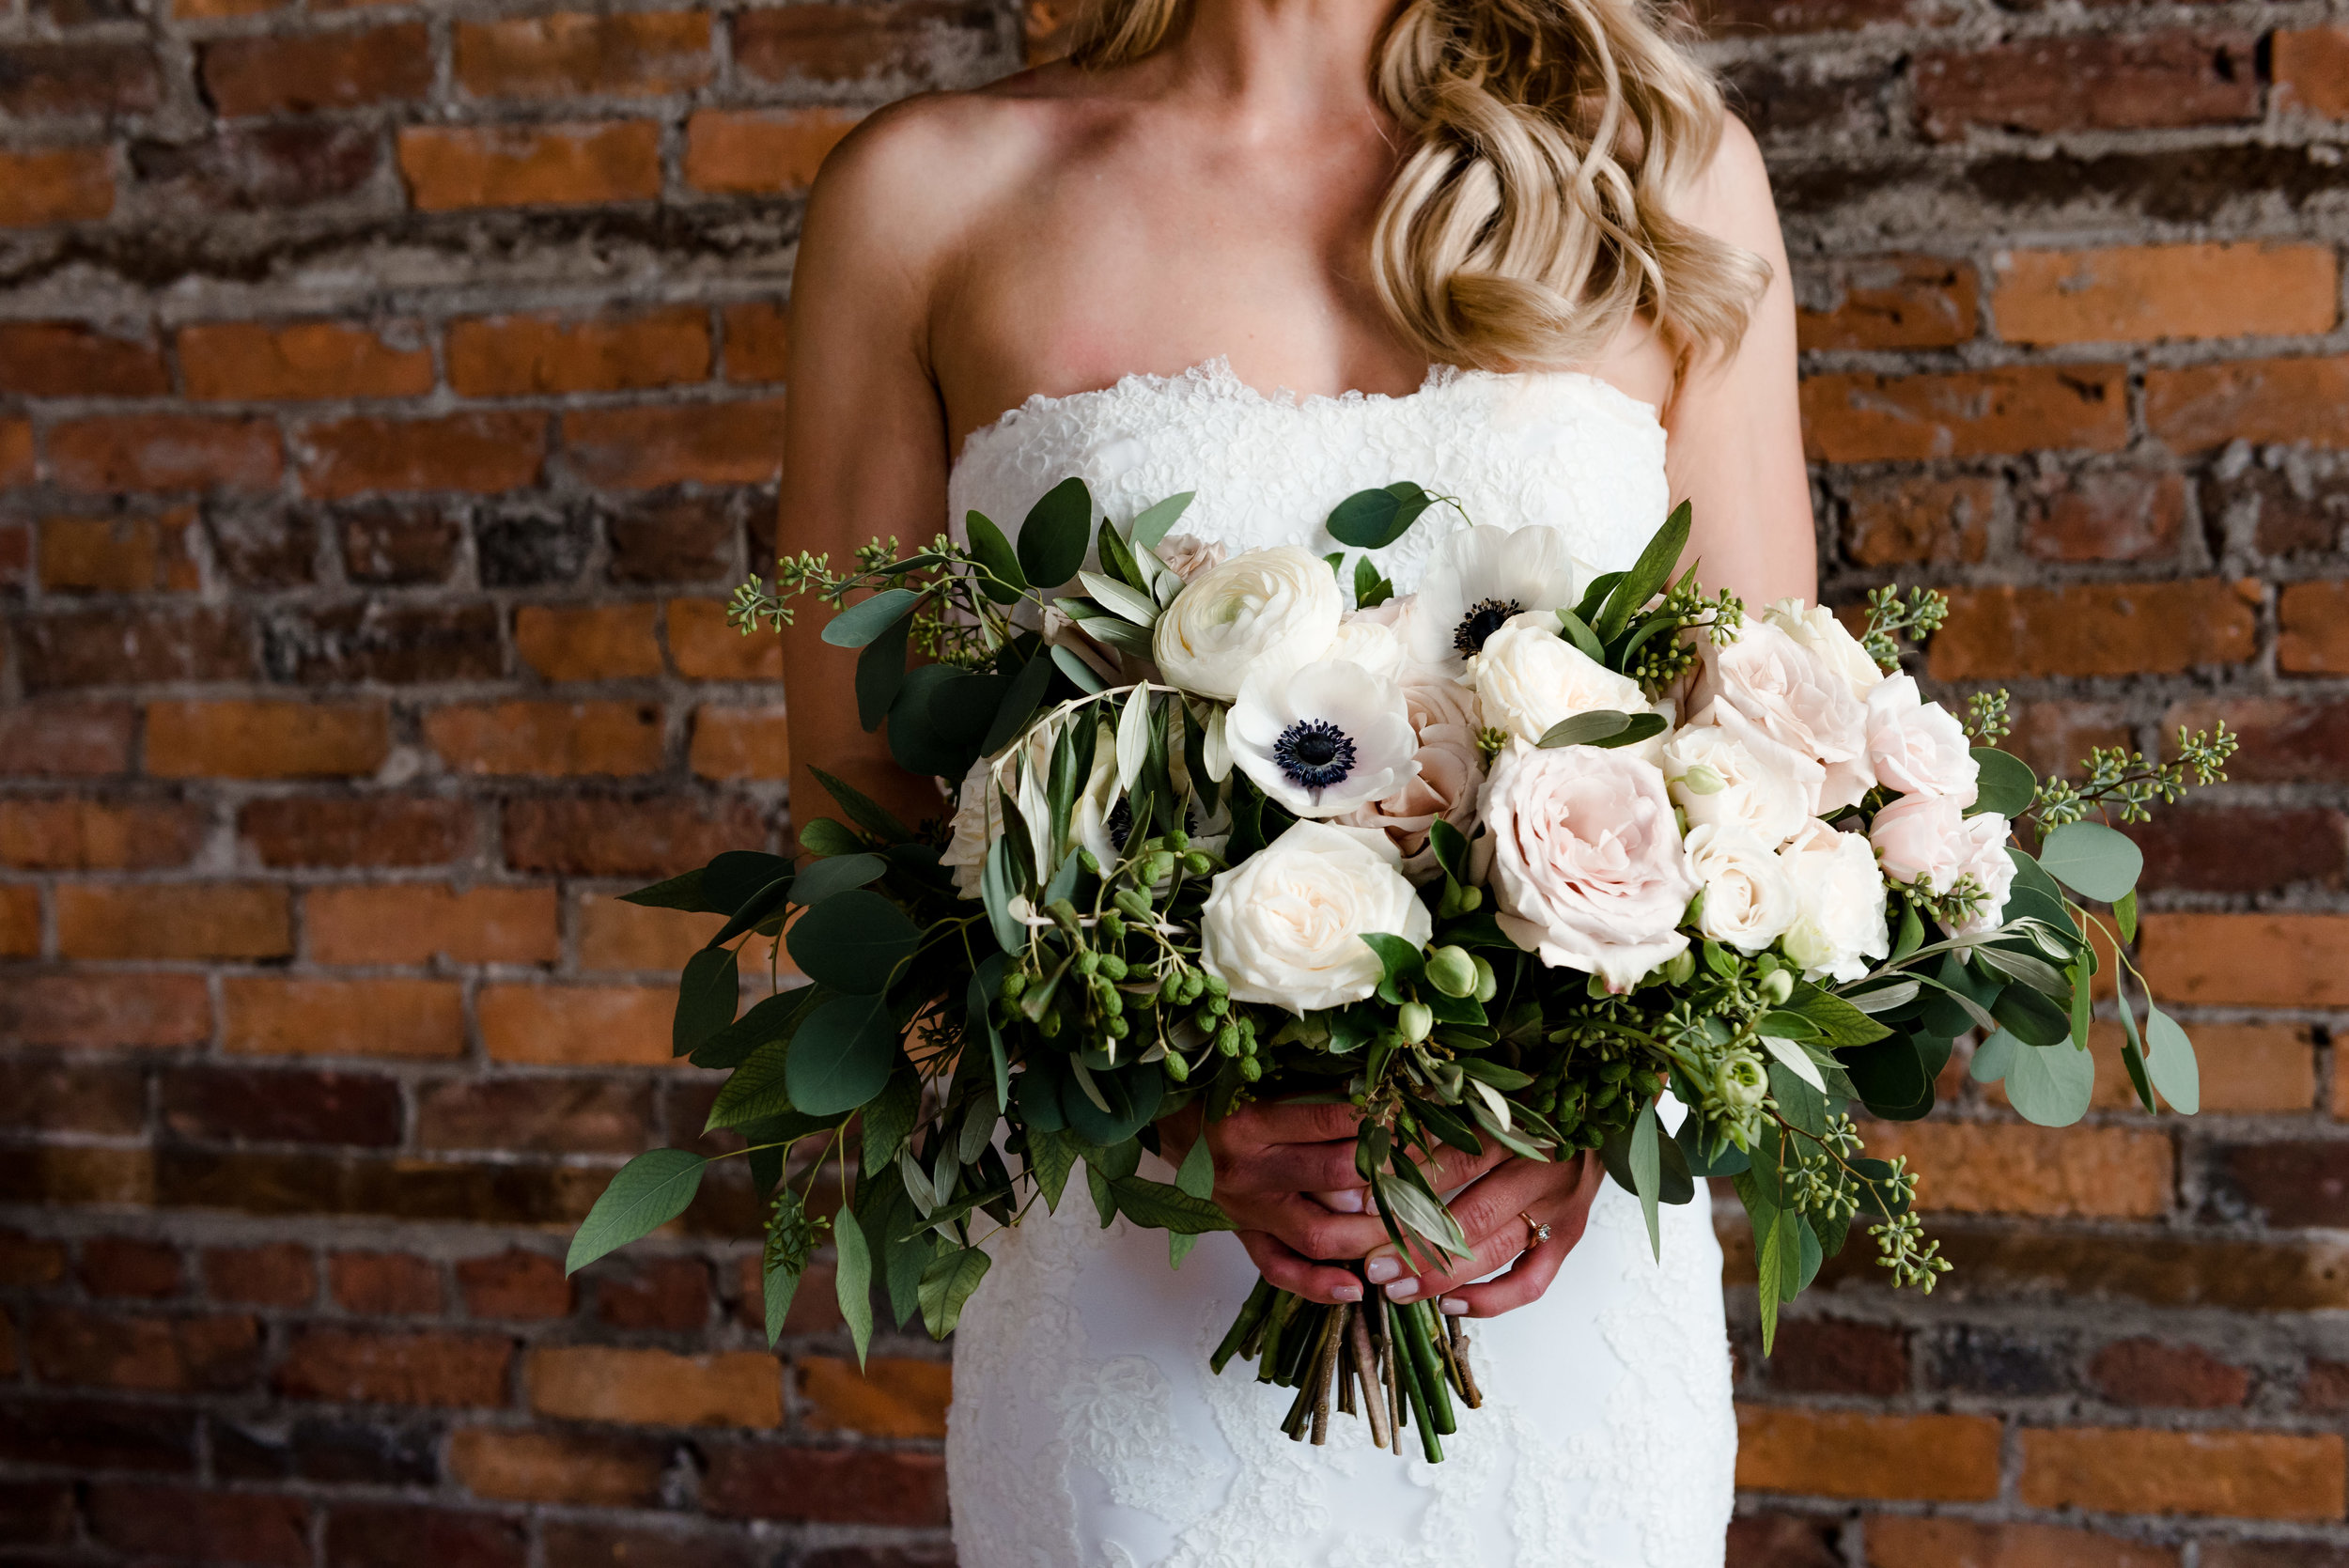 Kindred Blooms Organic Bridal Bouquet - Laura Robinson Photography